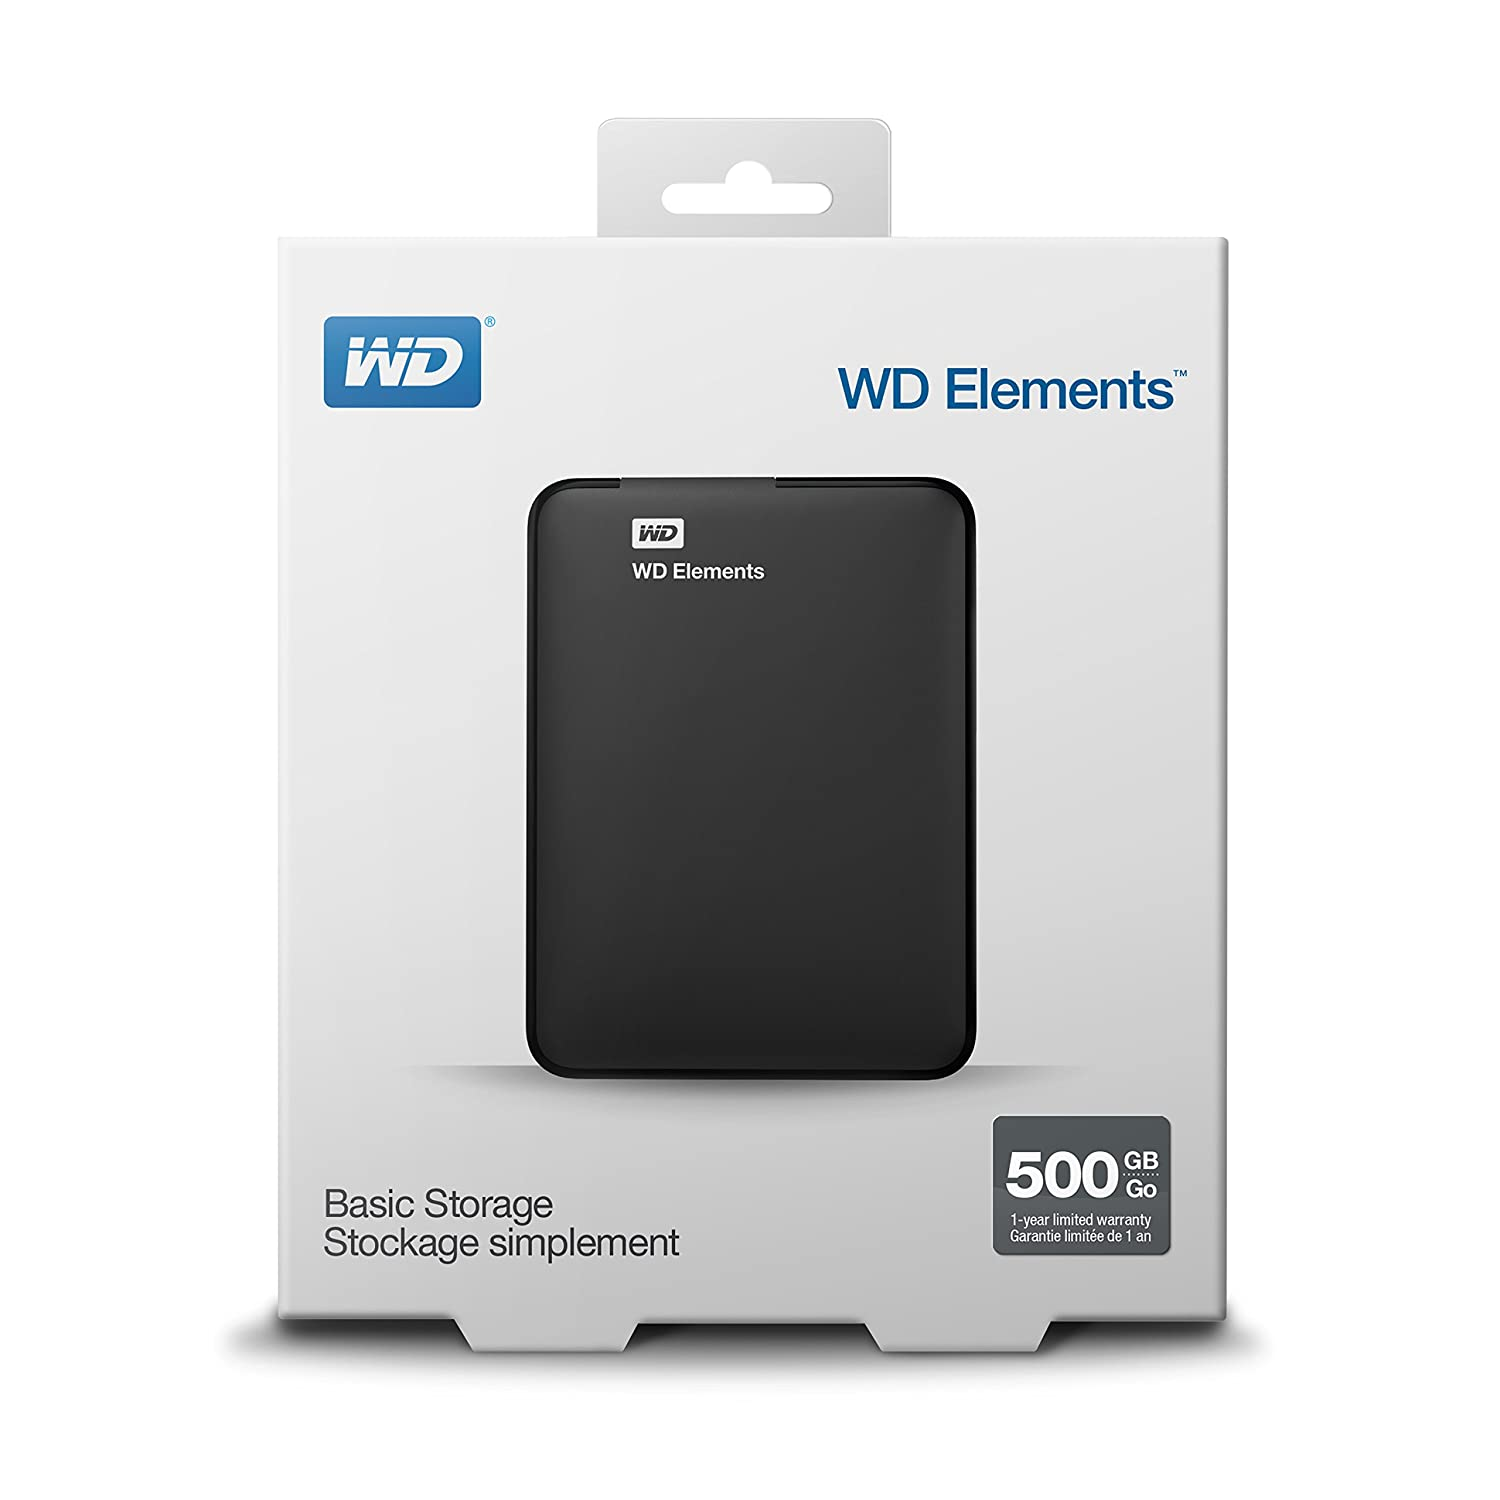 a3f1d6d48 Amazon.com  WD 500GB Elements Portable External Hard Drive - USB 3.0 -  WDBUZG5000ABK-NESN  Computers   Accessories